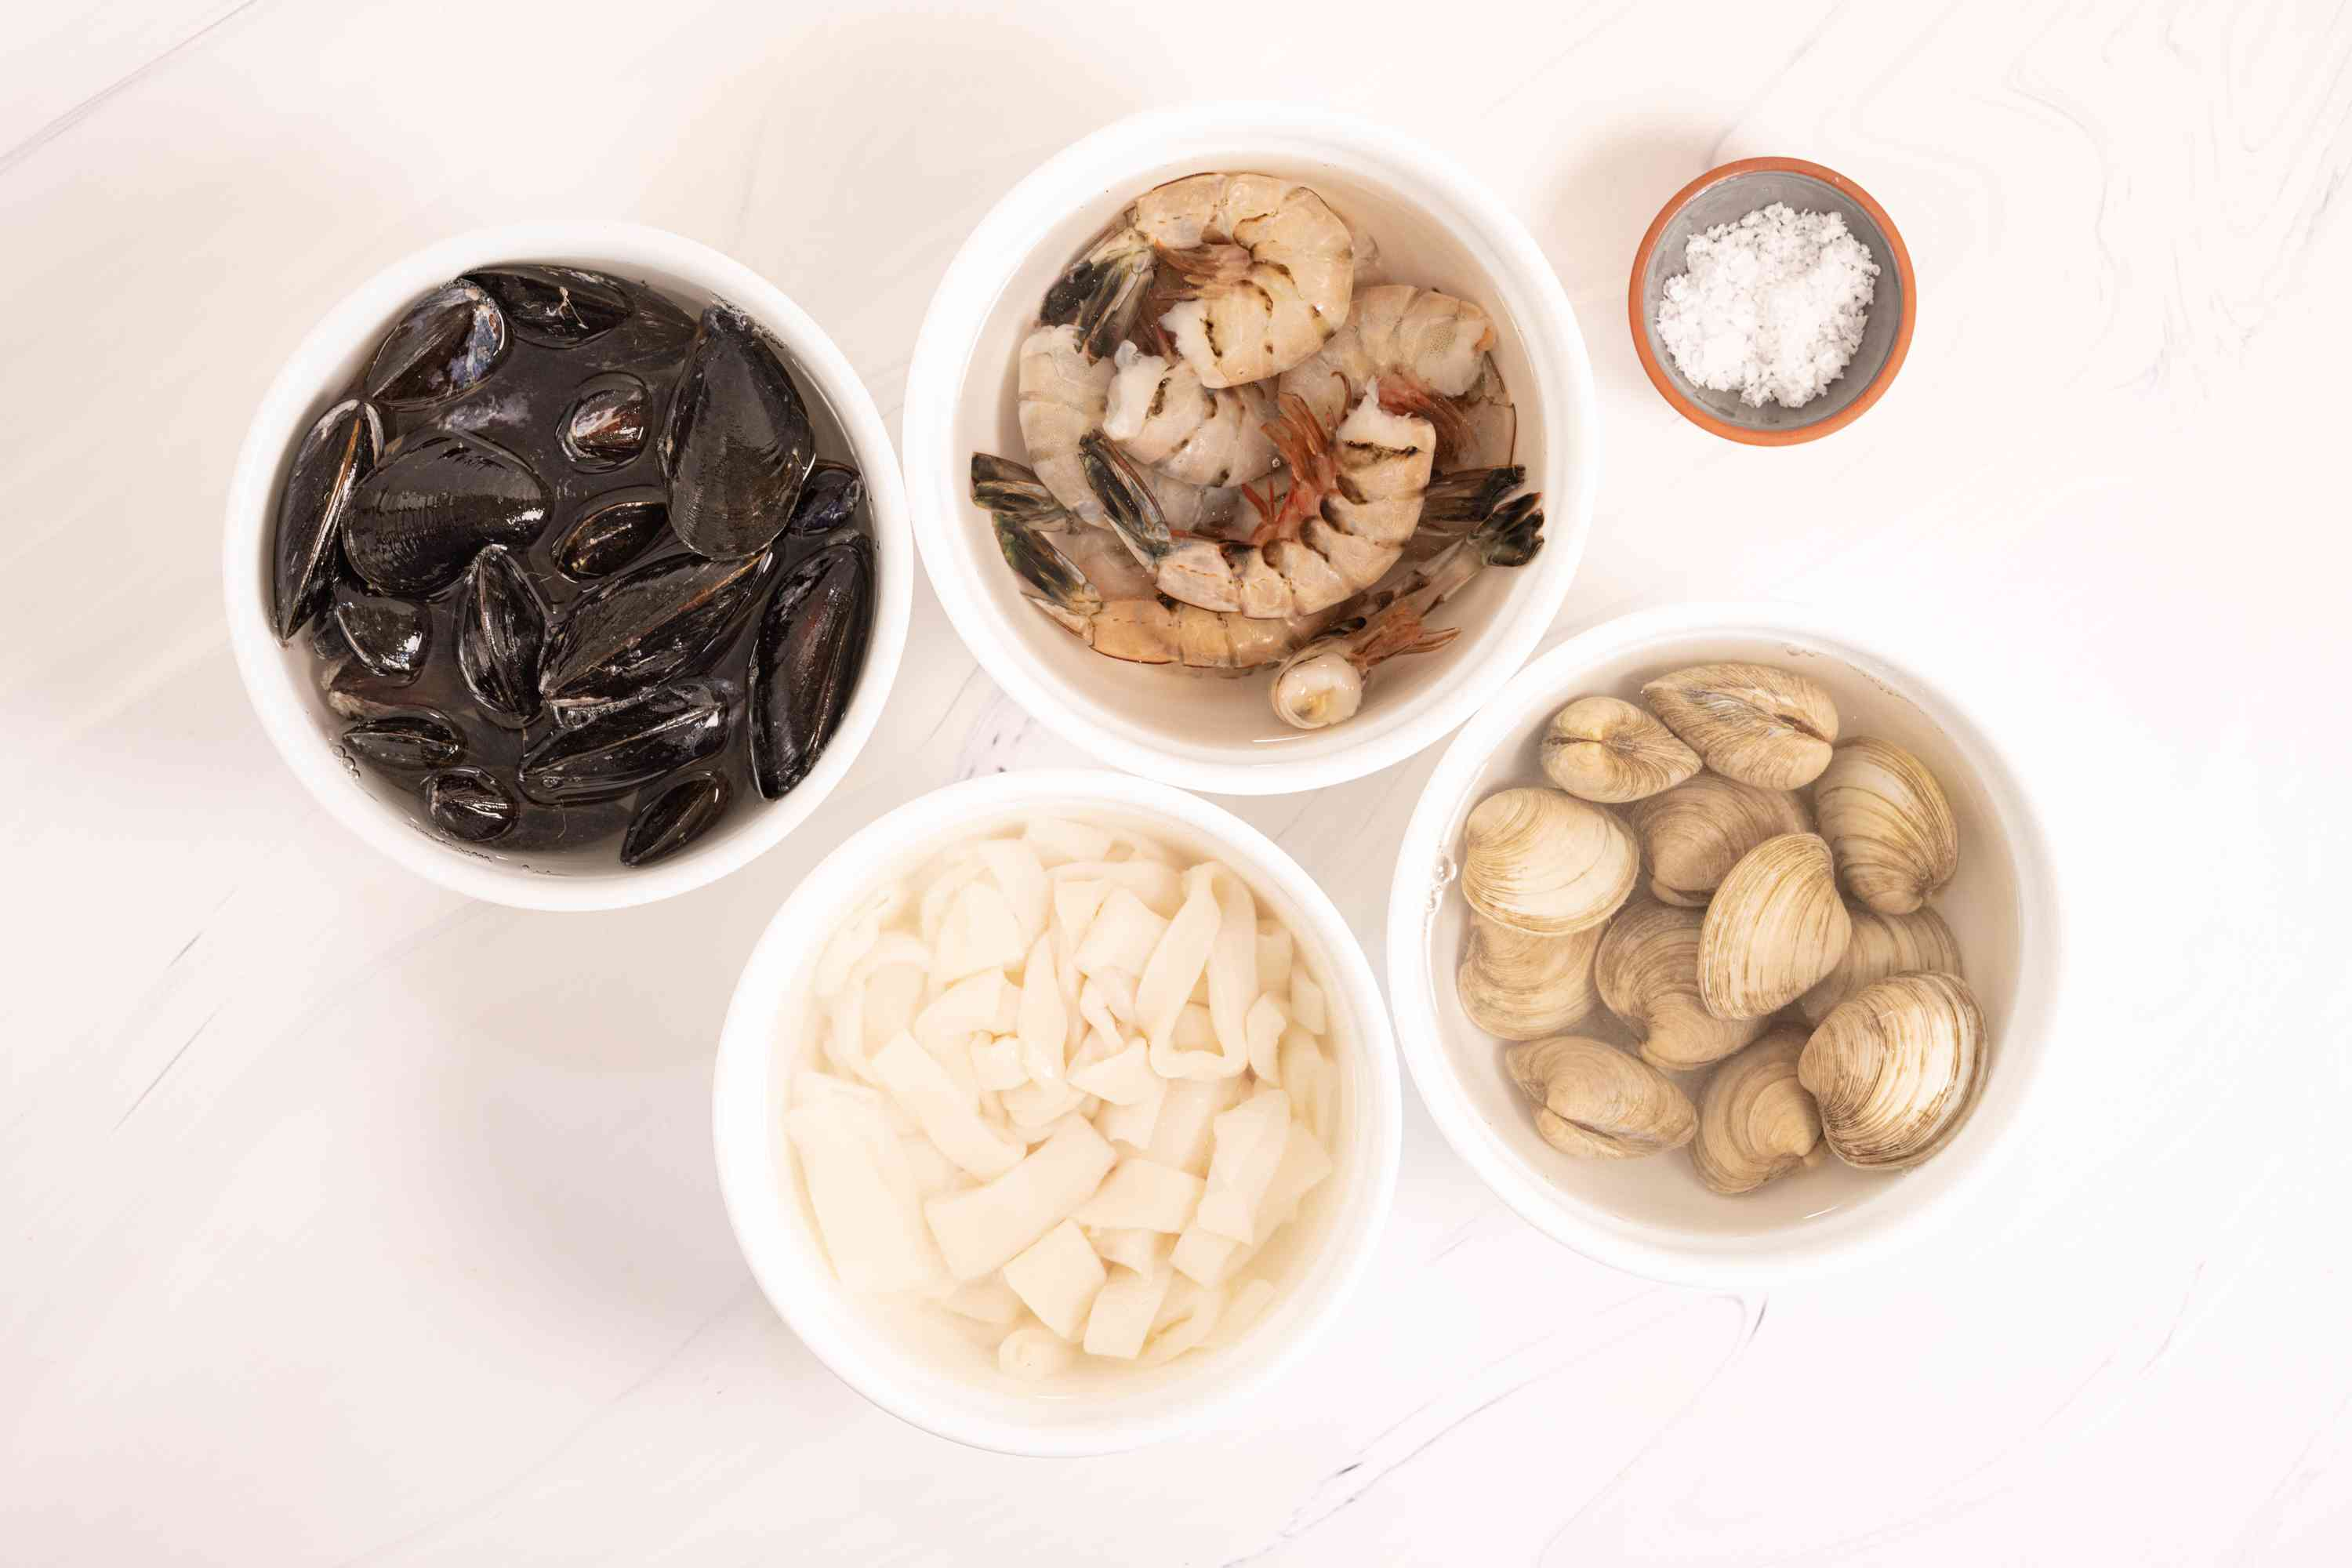 shrimp, squid, mussels, and small clams in 4 different bowls of cold water